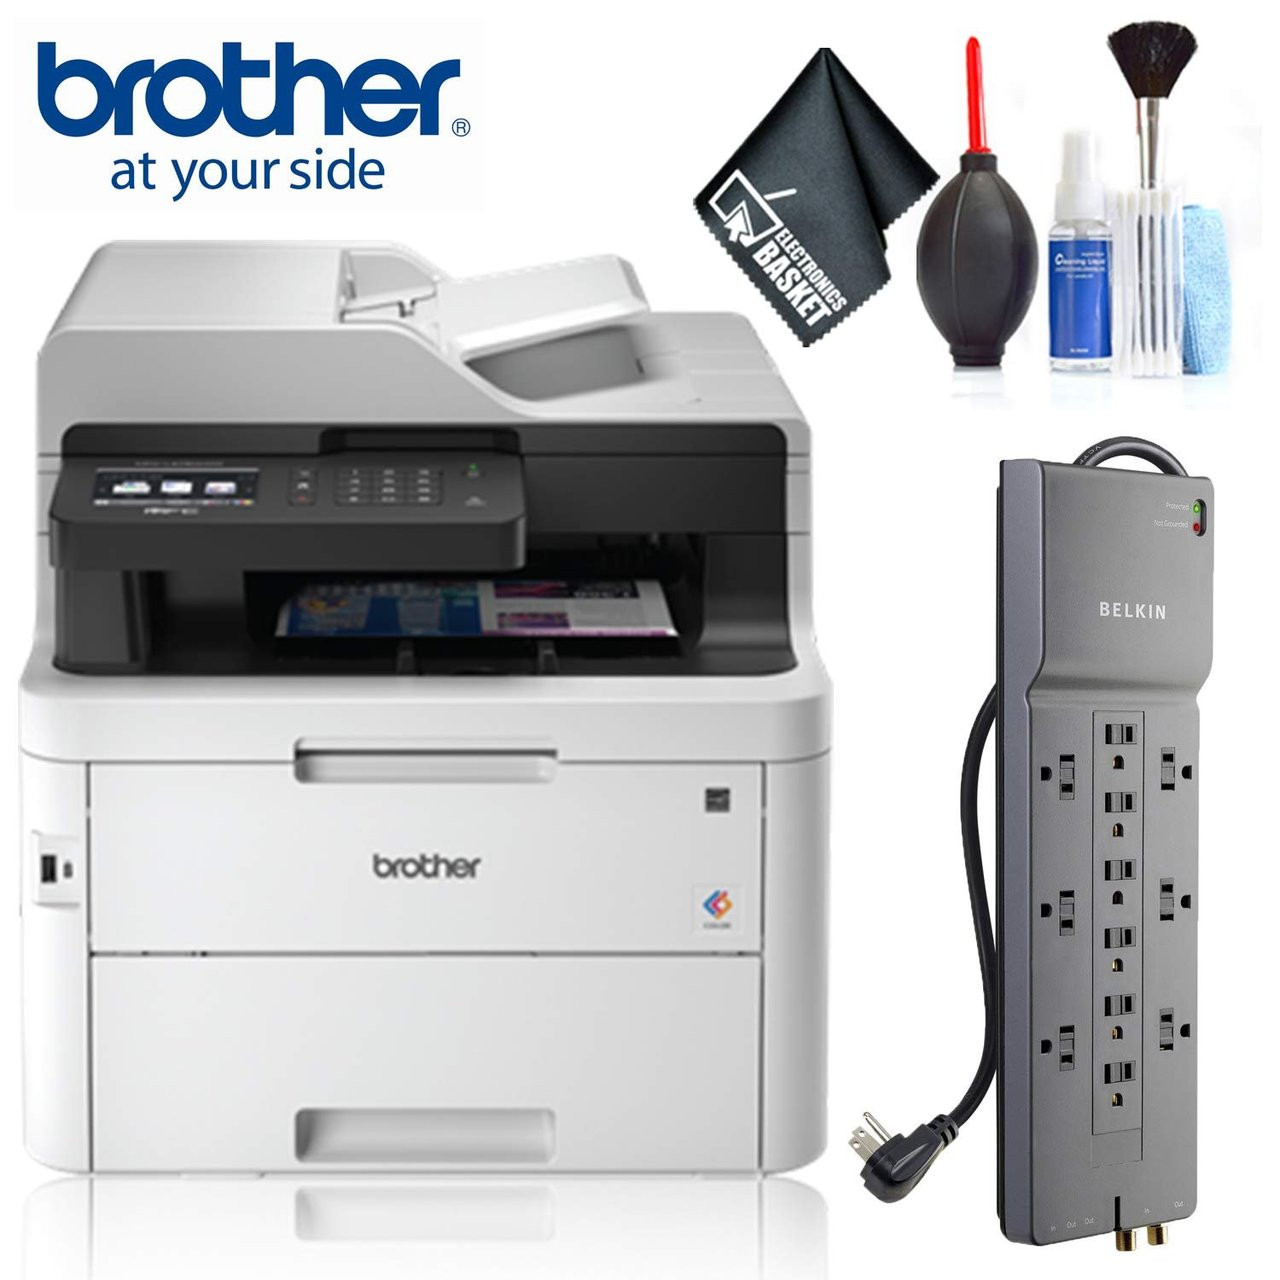 Brother MFC-L3750CDW Digital Color All-in-One Printer Plus Bundle